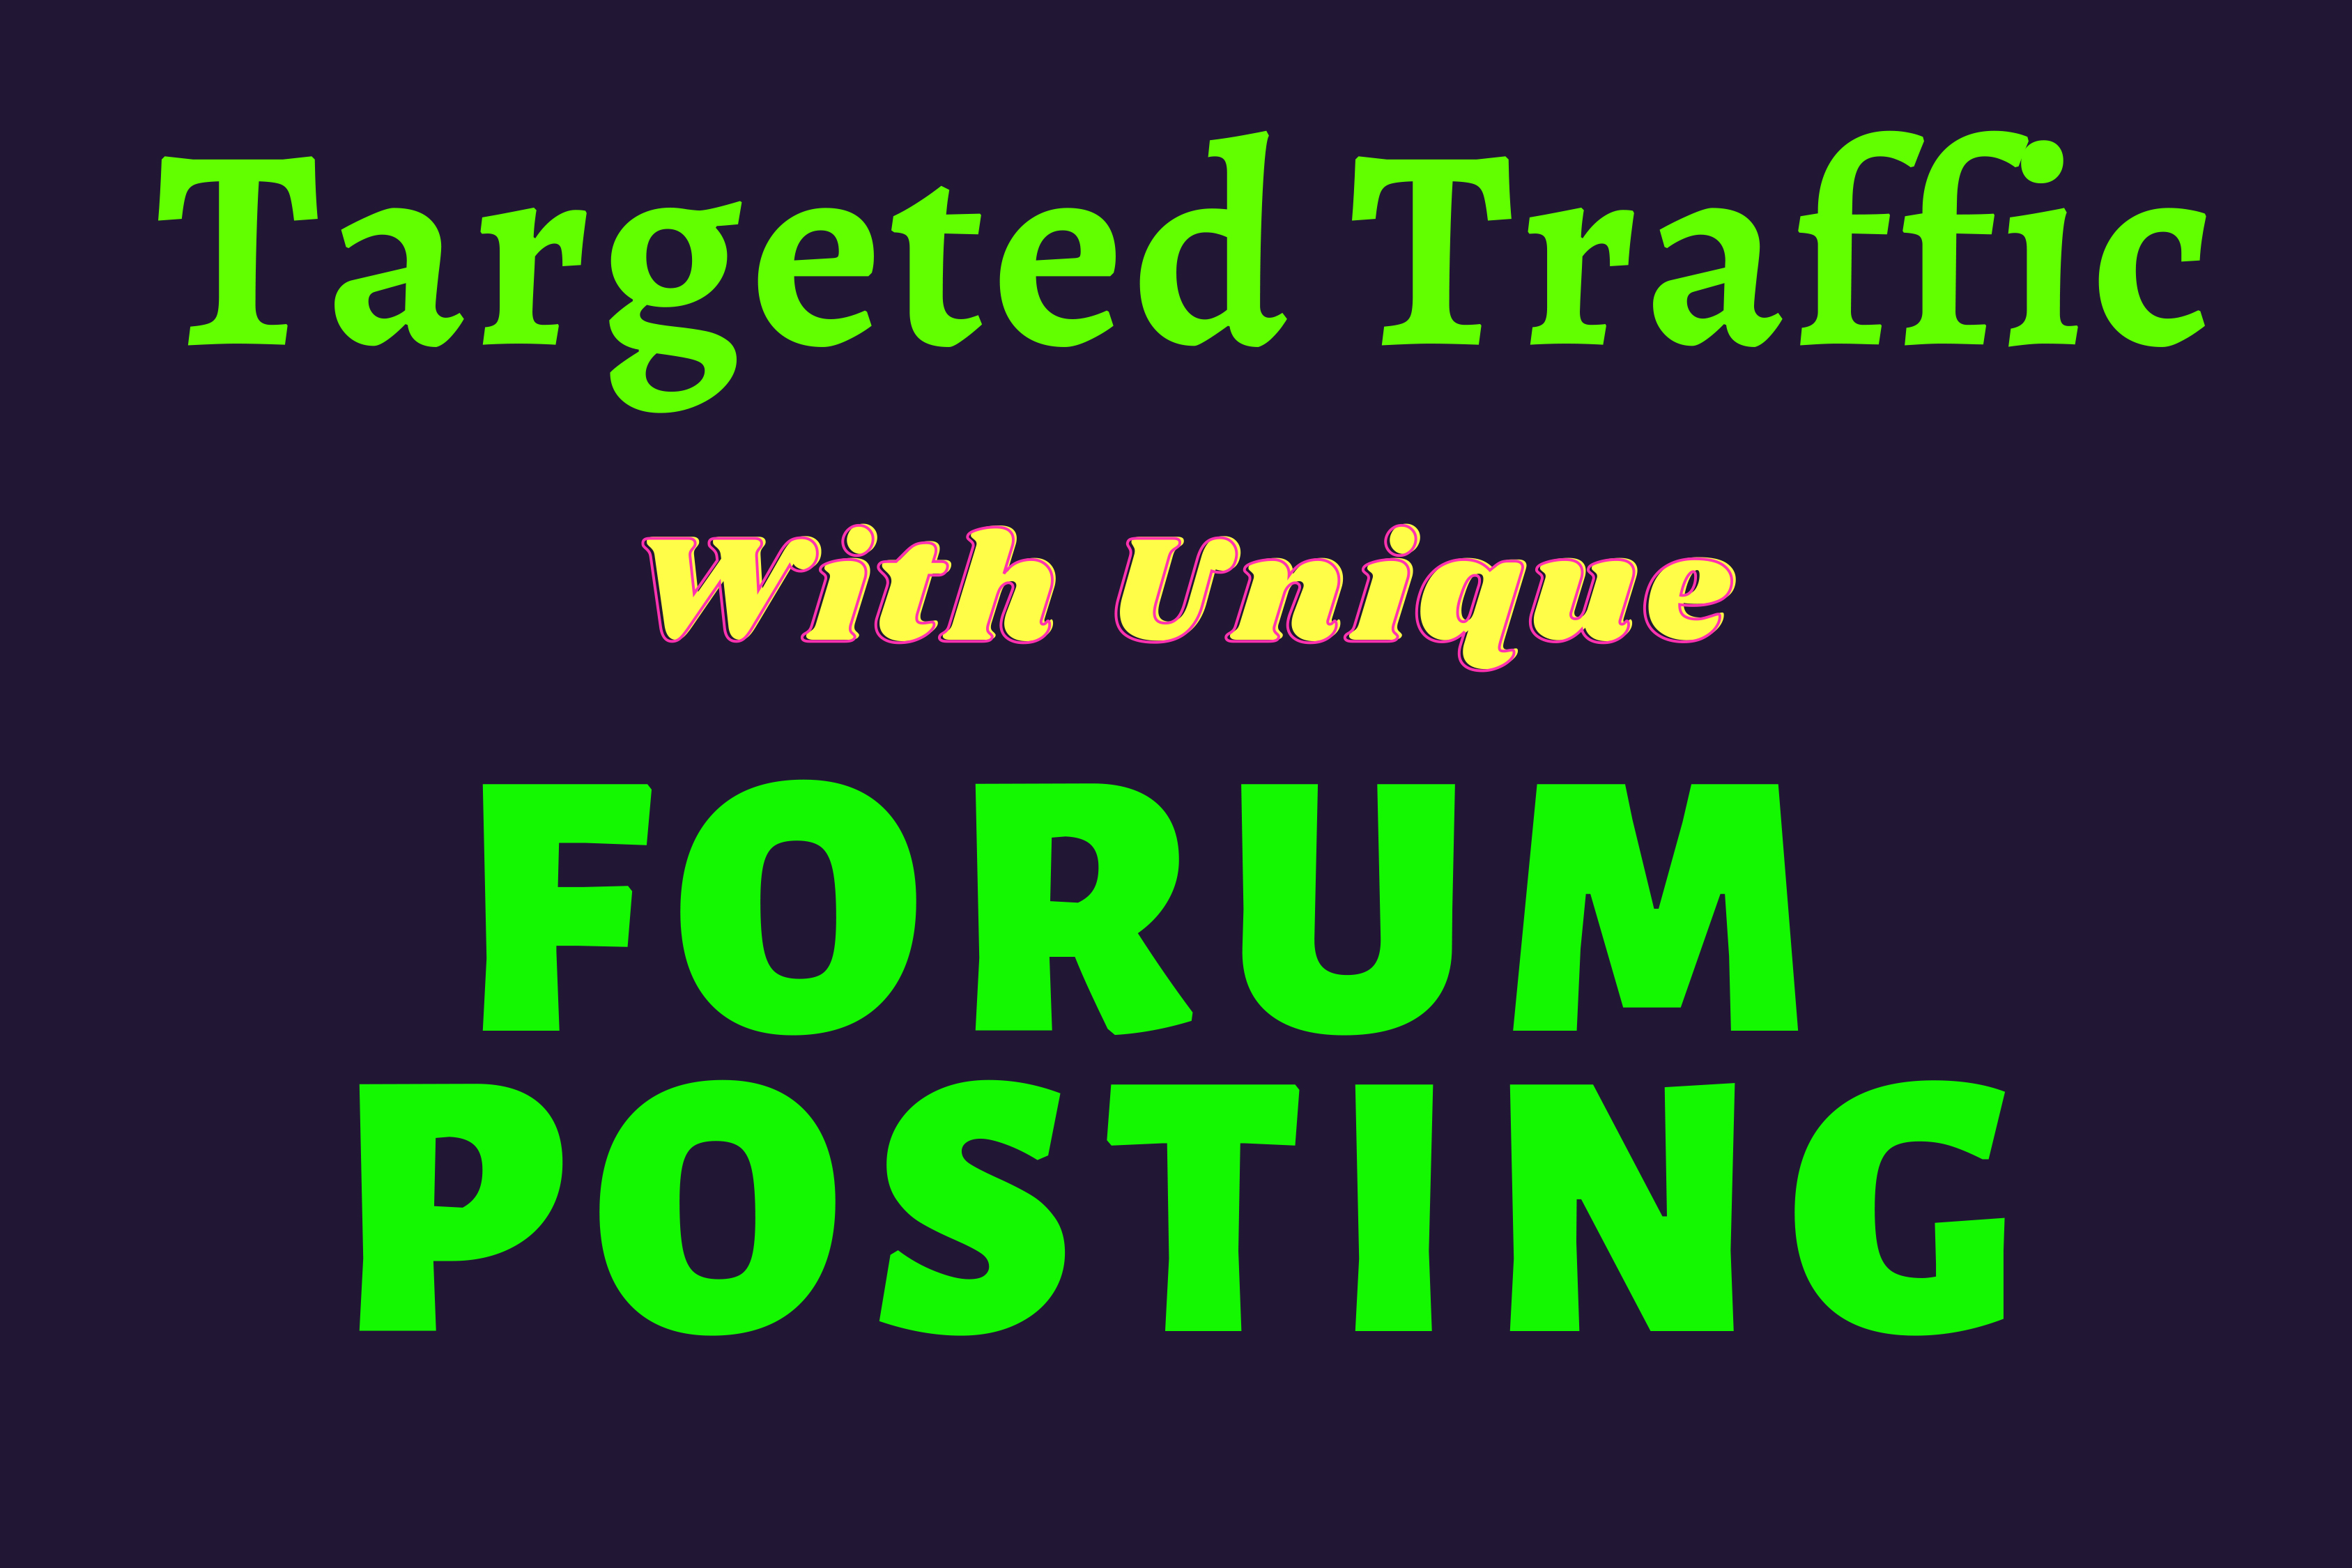 Increase Targeted Traffic With Unique 30 Forum Posting on High DA Site